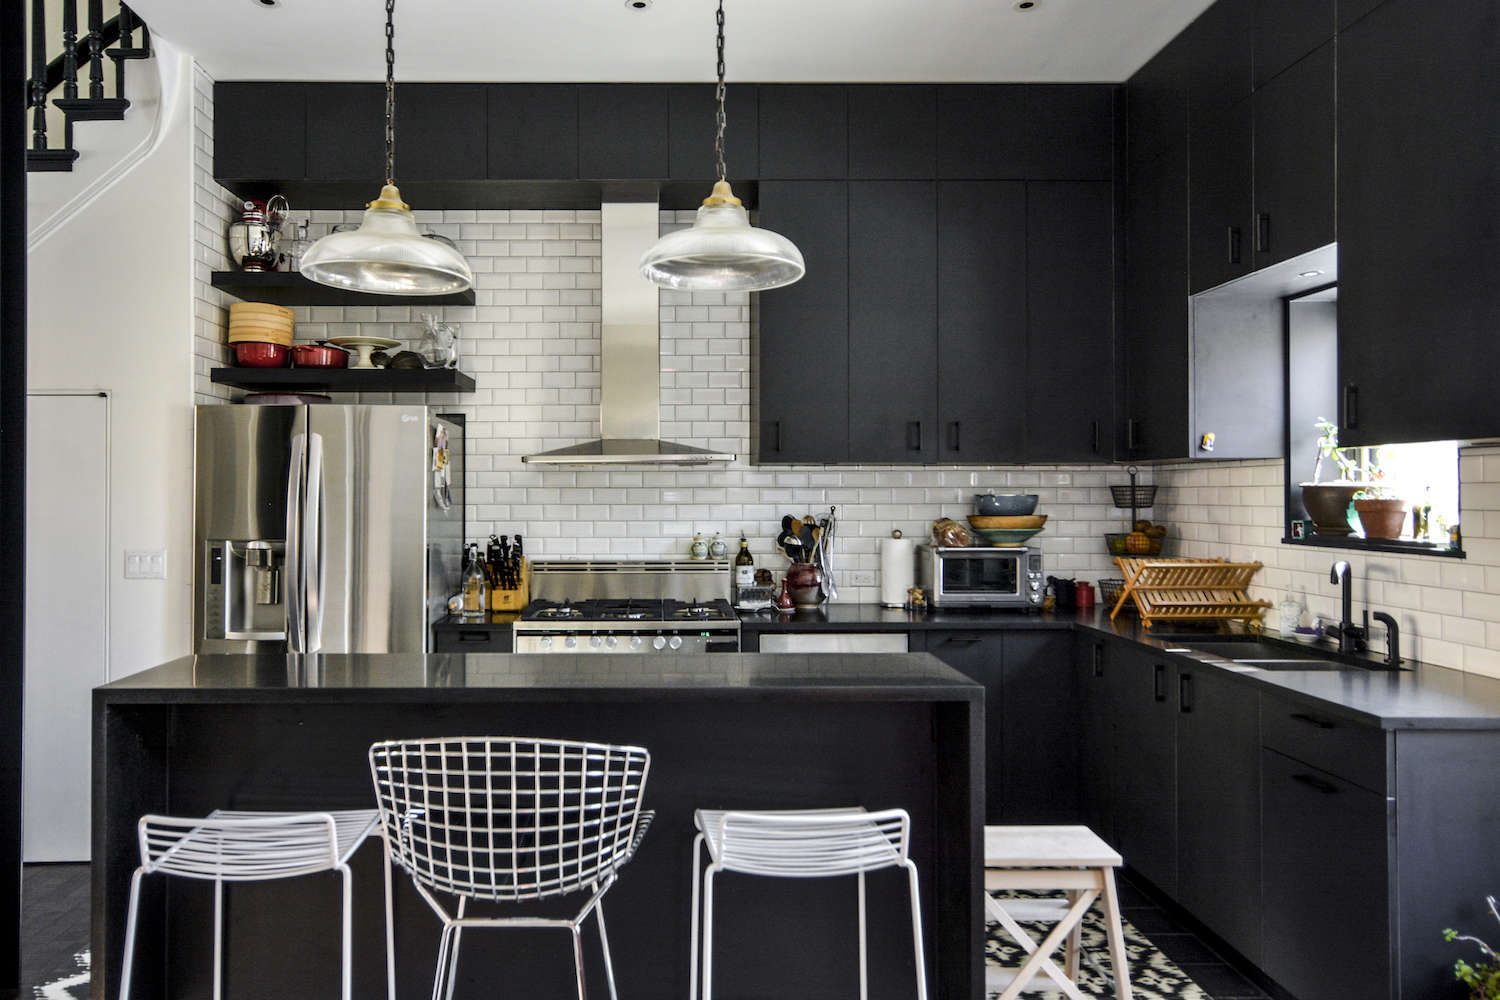 architects gregory merkel and catalina rojas's remodeled brooklyn townhouse | r 11